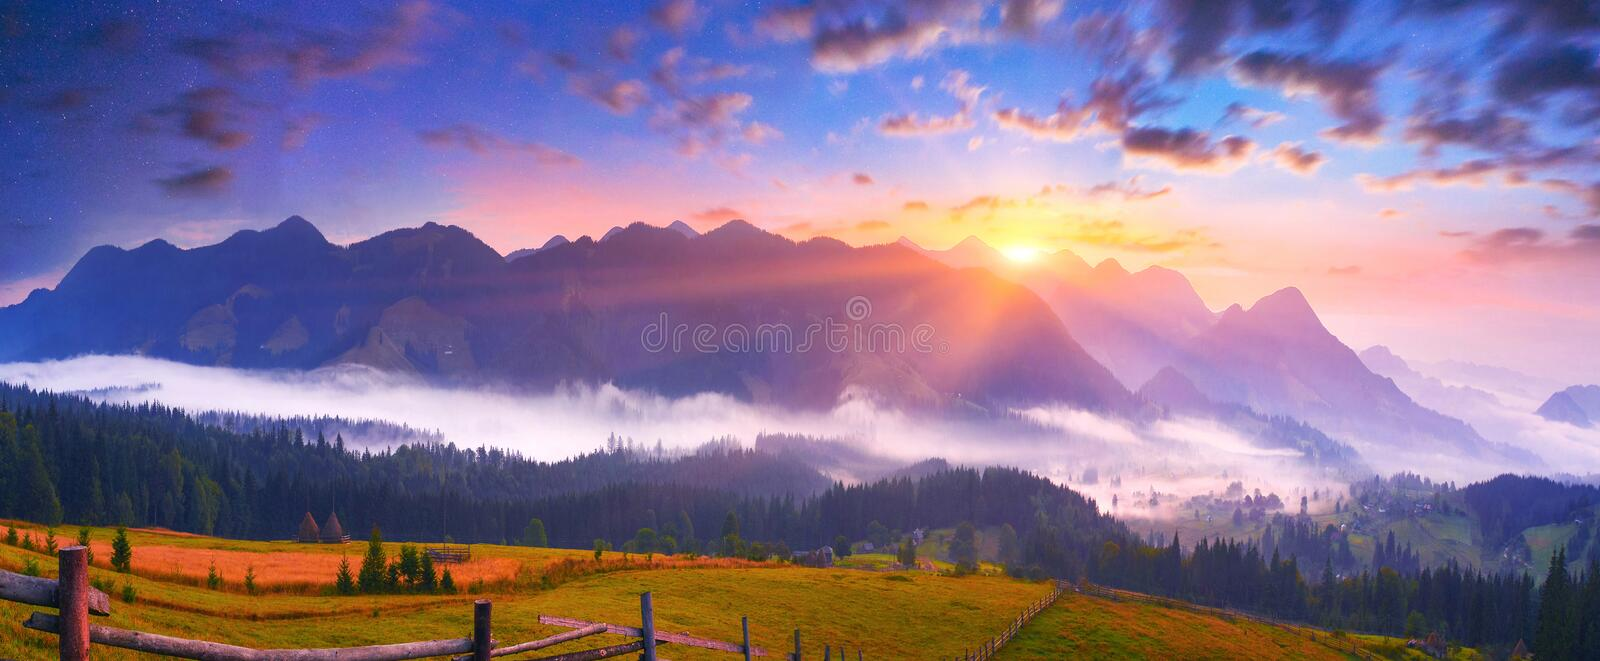 Landscape of summer mountains with rising sun. Panoramic landscape with mountain mist at sunrise stock photography